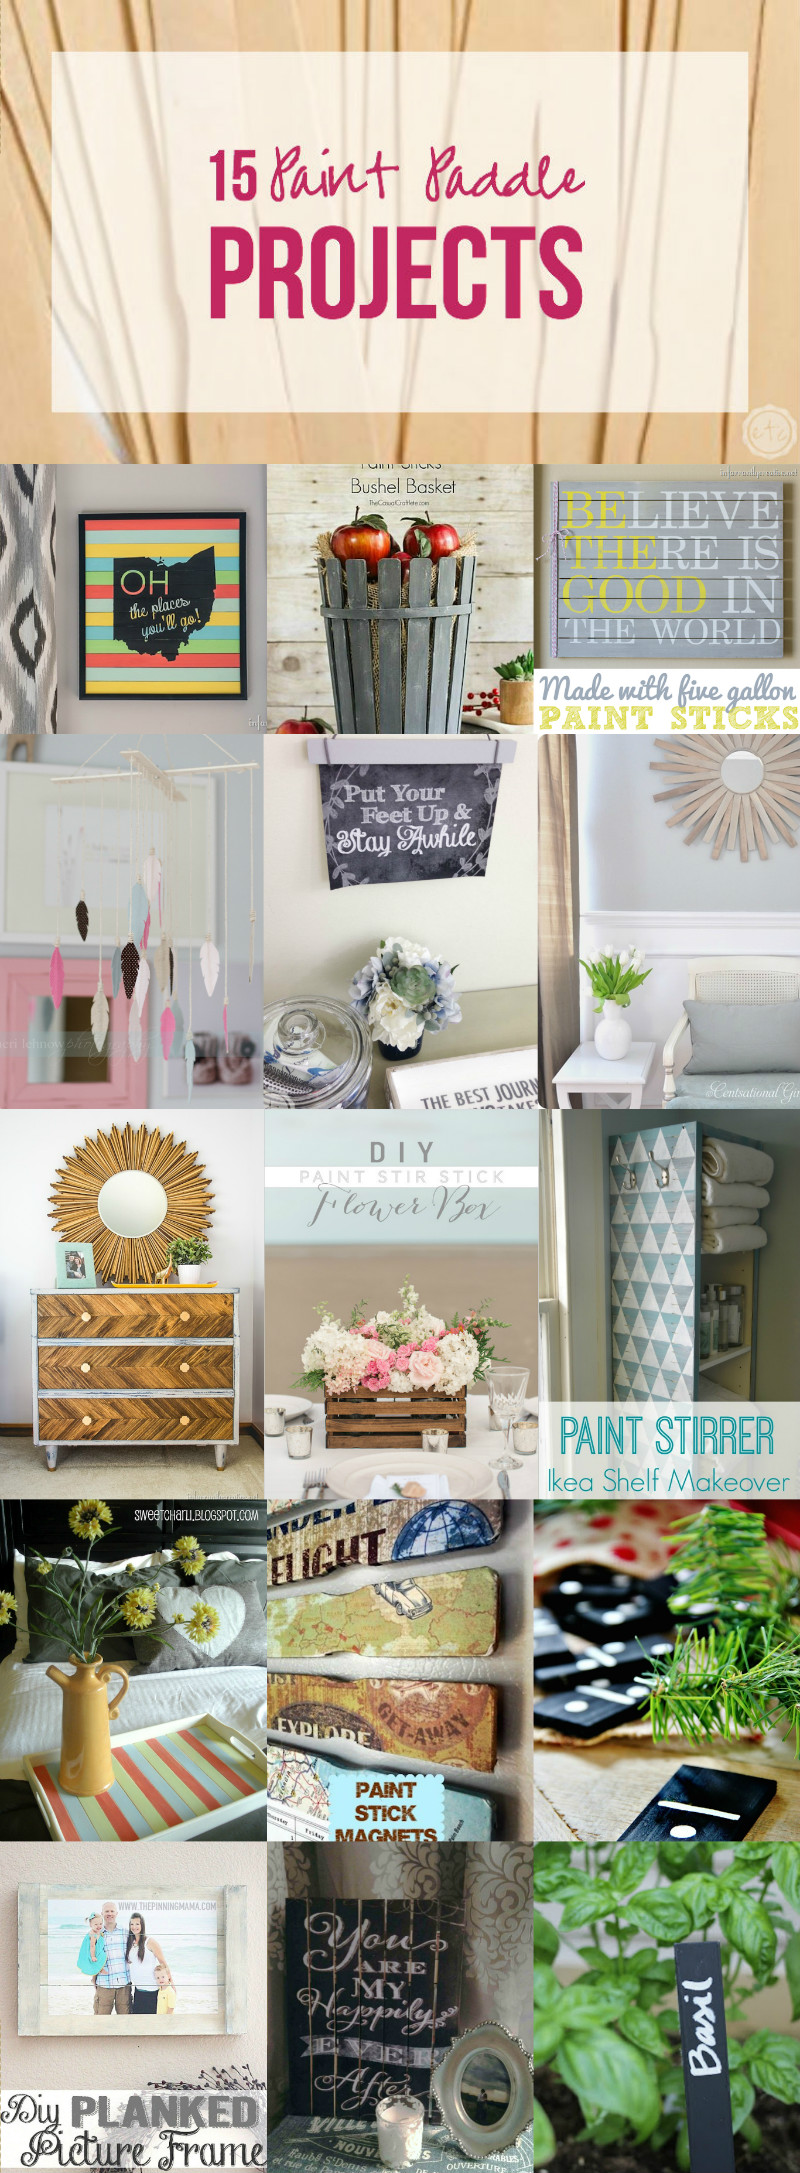 15 Paint Paddle Projects with Happily Ever After, Etc.